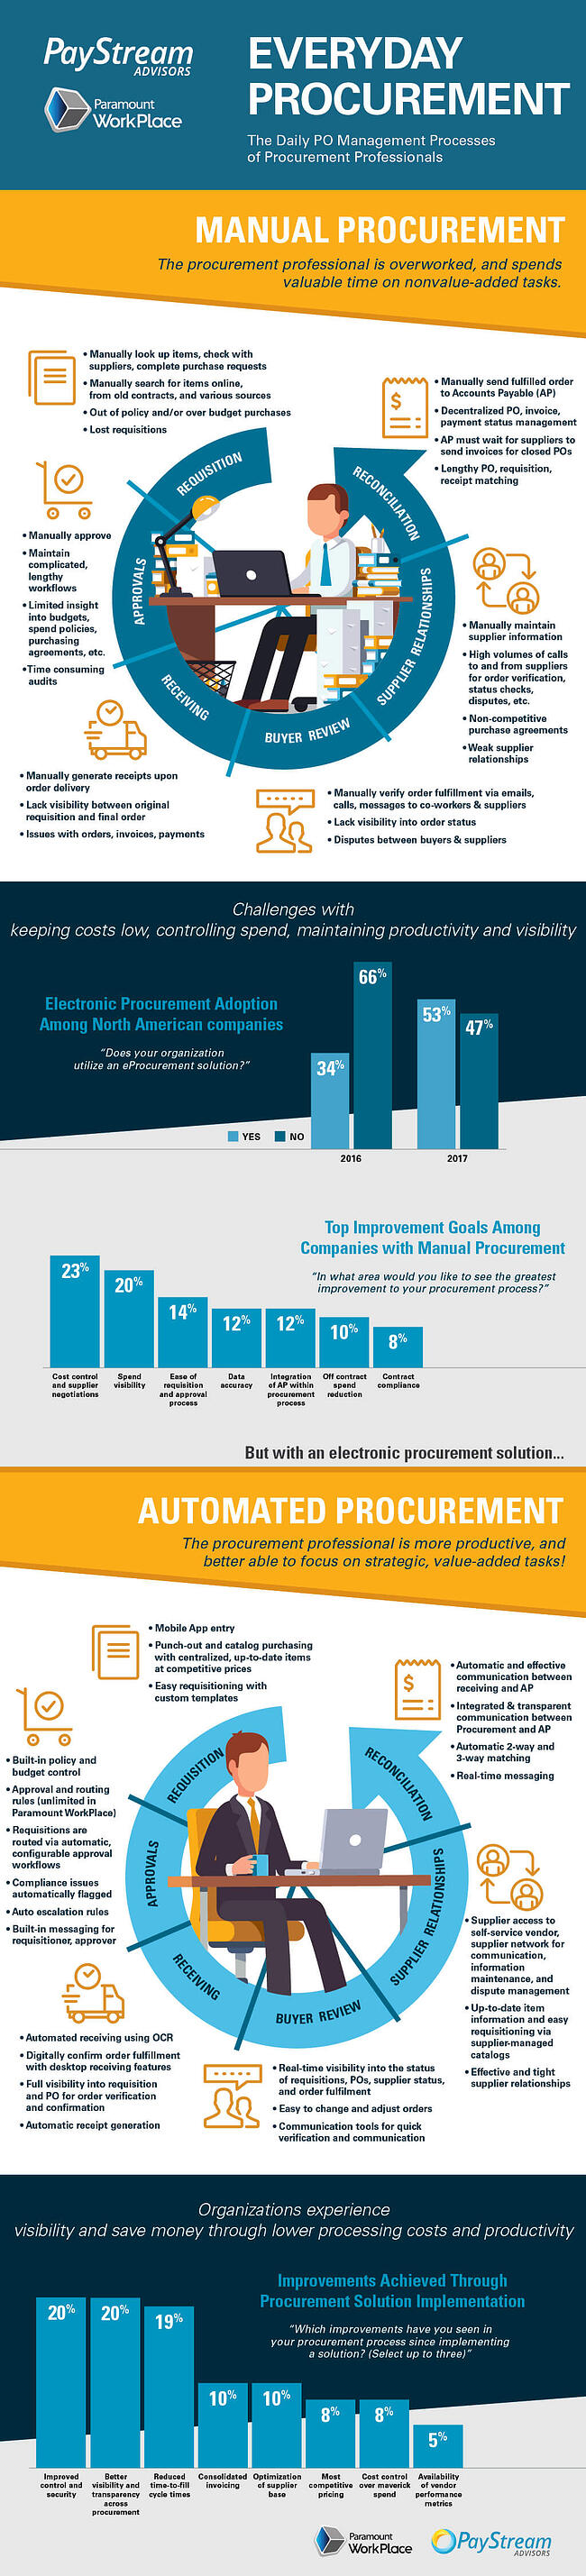 life of procurement professionals infographic